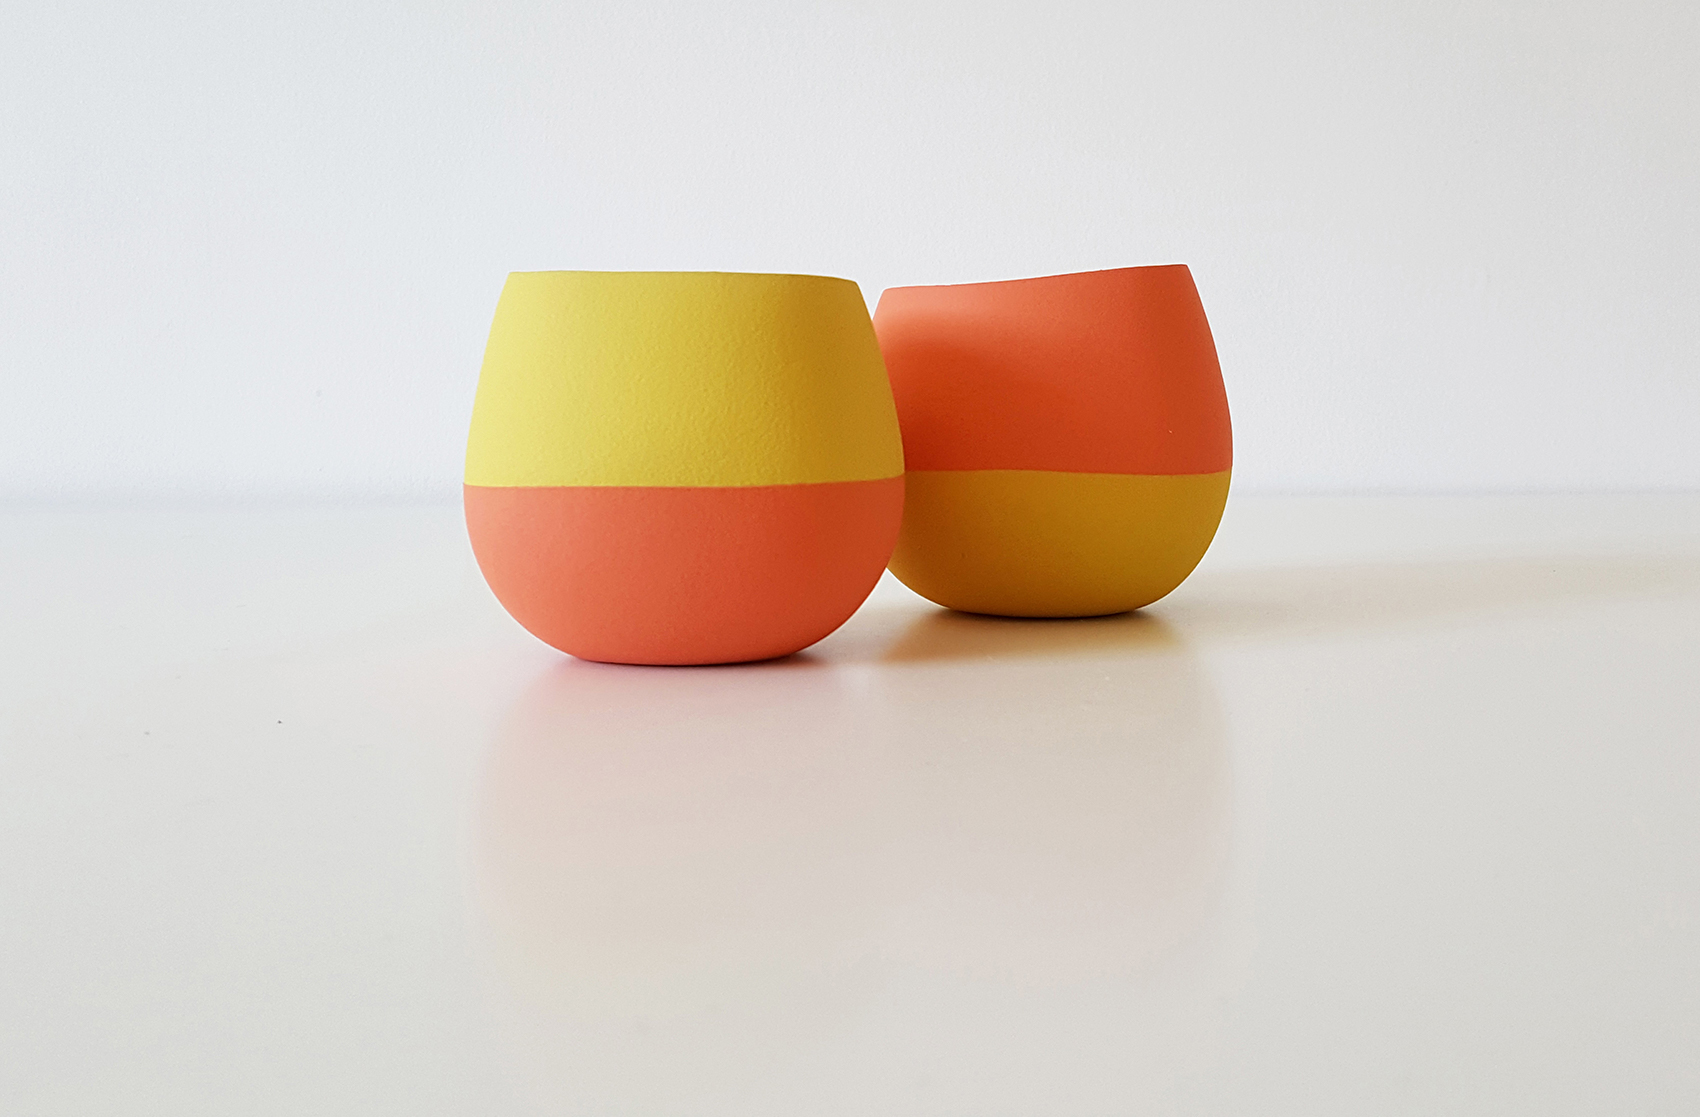 Small open vessel forms - orange, yellow and yellow, orange - height approx 8cm